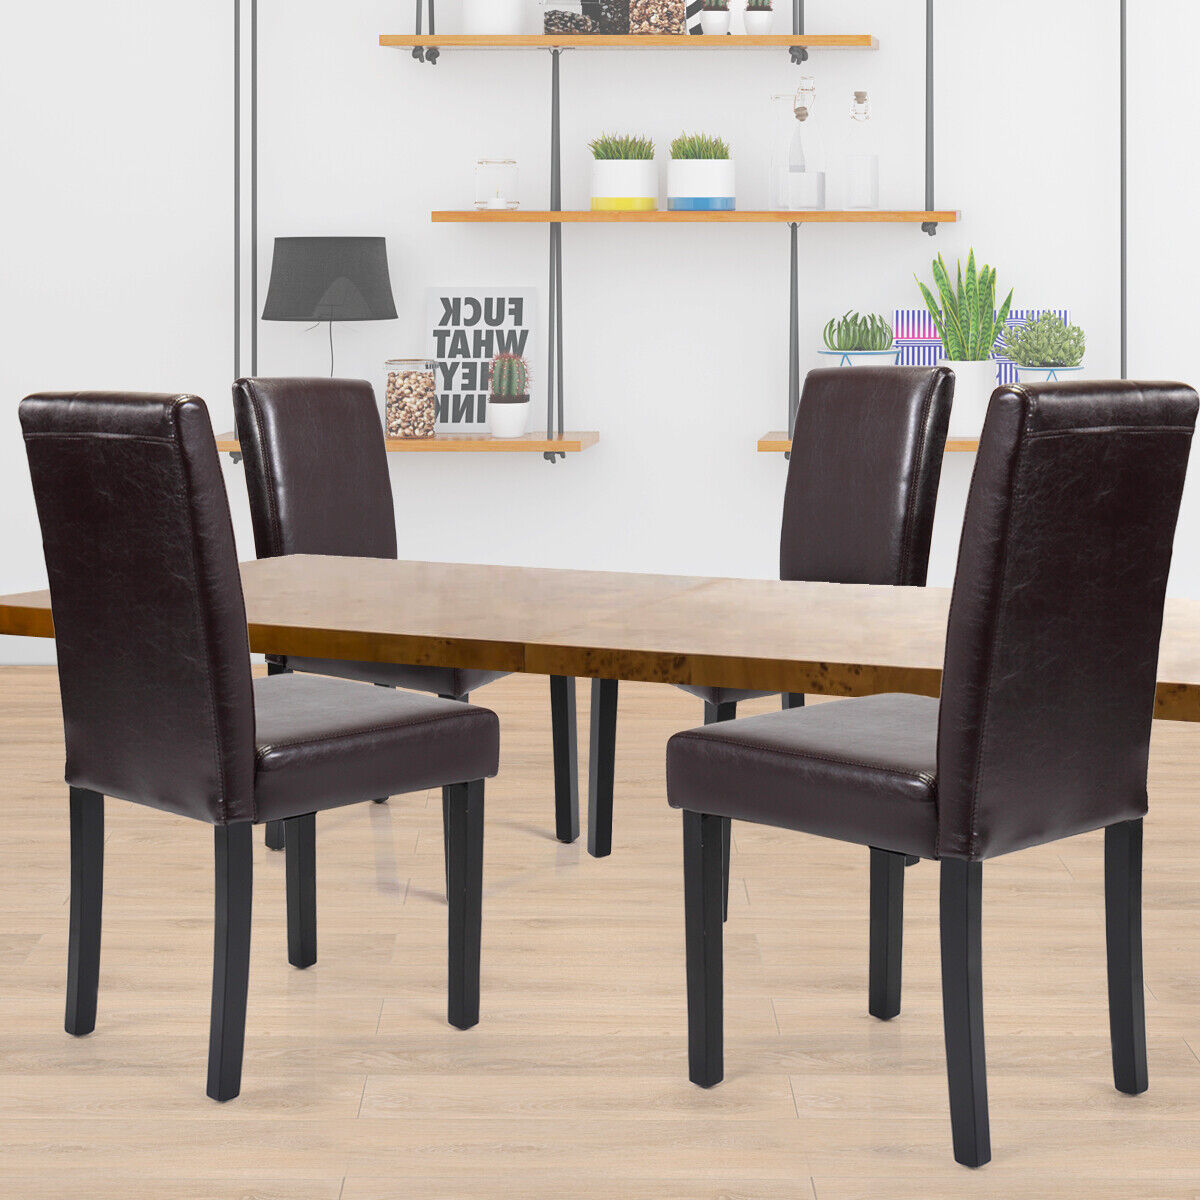 Tremendous Set Of 4 Pcs Dining Room Chairs Kitchen Vintage Wood Pu Leather Design Brown New Gamerscity Chair Design For Home Gamerscityorg